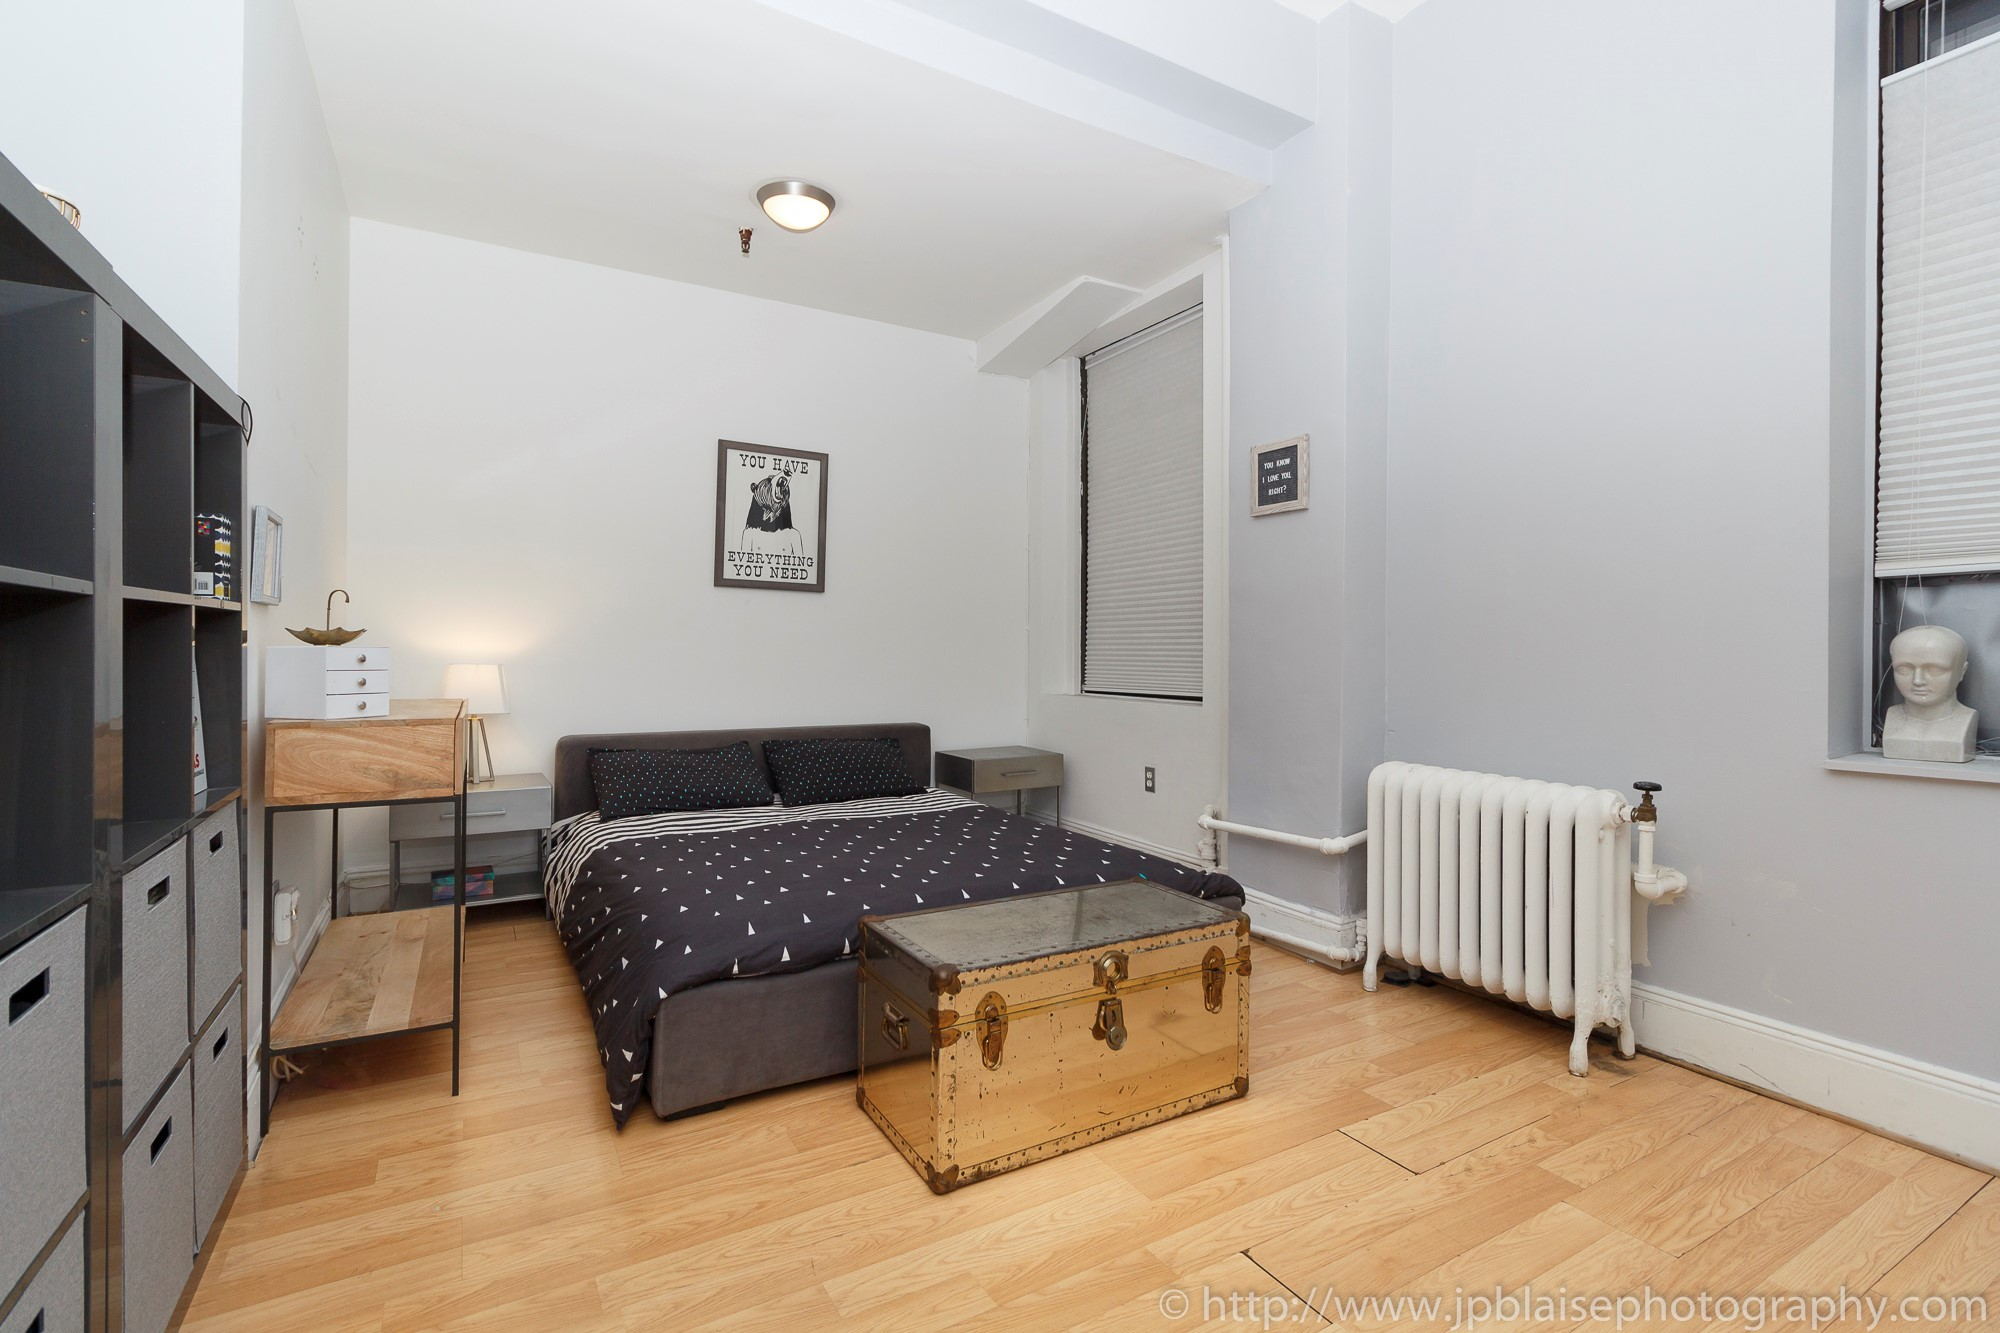 Nyc apartment photographer real estate new york studio loft brooklyn heights sleeping alcove